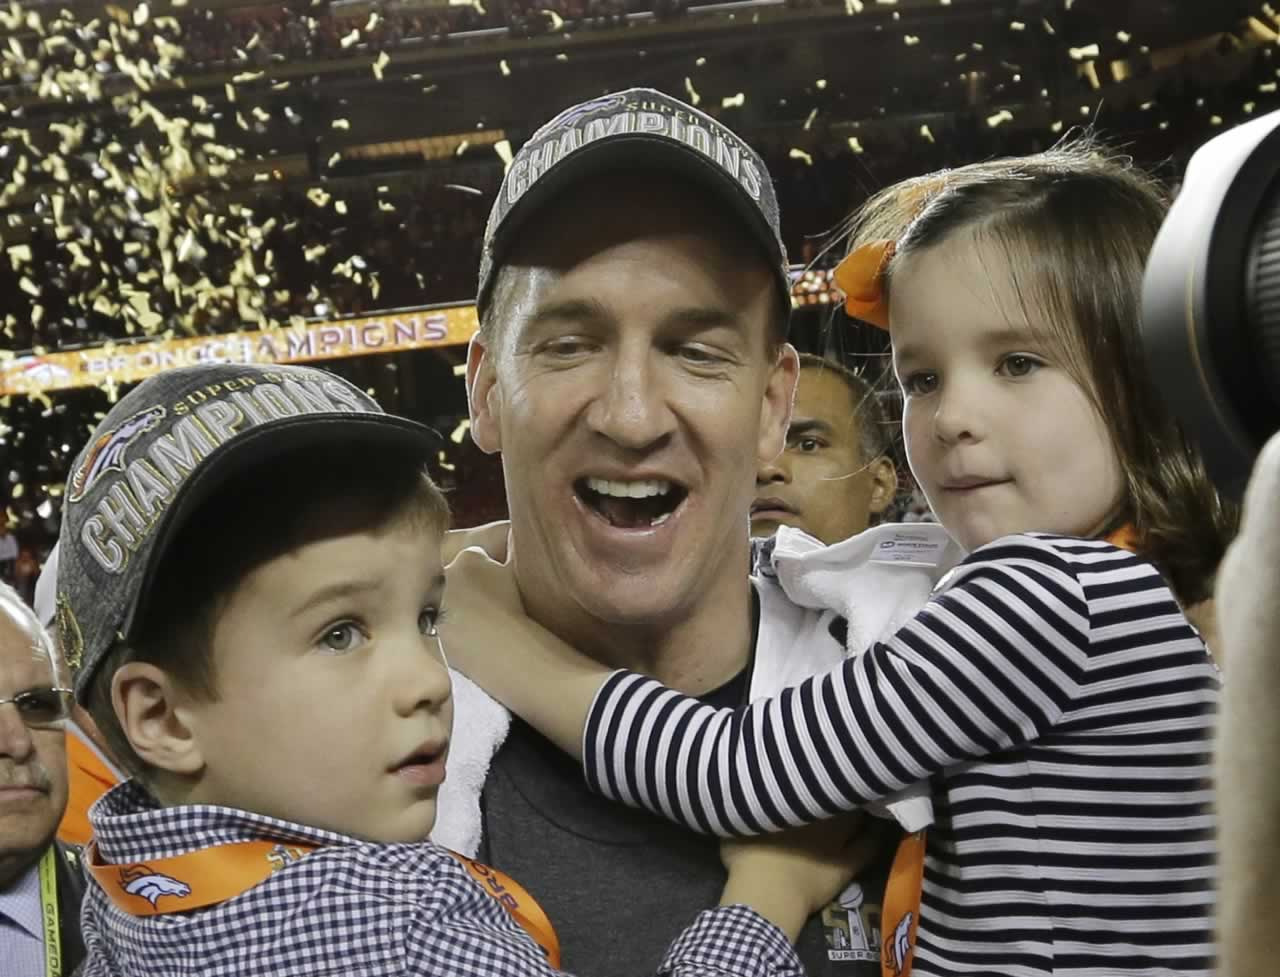 "<div class=""meta image-caption""><div class=""origin-logo origin-image none""><span>none</span></div><span class=""caption-text"">Broncos' Peyton Manning celebrates with his son Marshall and daughter Mosley after the NFL Super Bowl 50 football game Sunday, Feb. 7, 2016, in Santa Clara, Calif. (AP Photo/David J. Phillip)</span></div>"